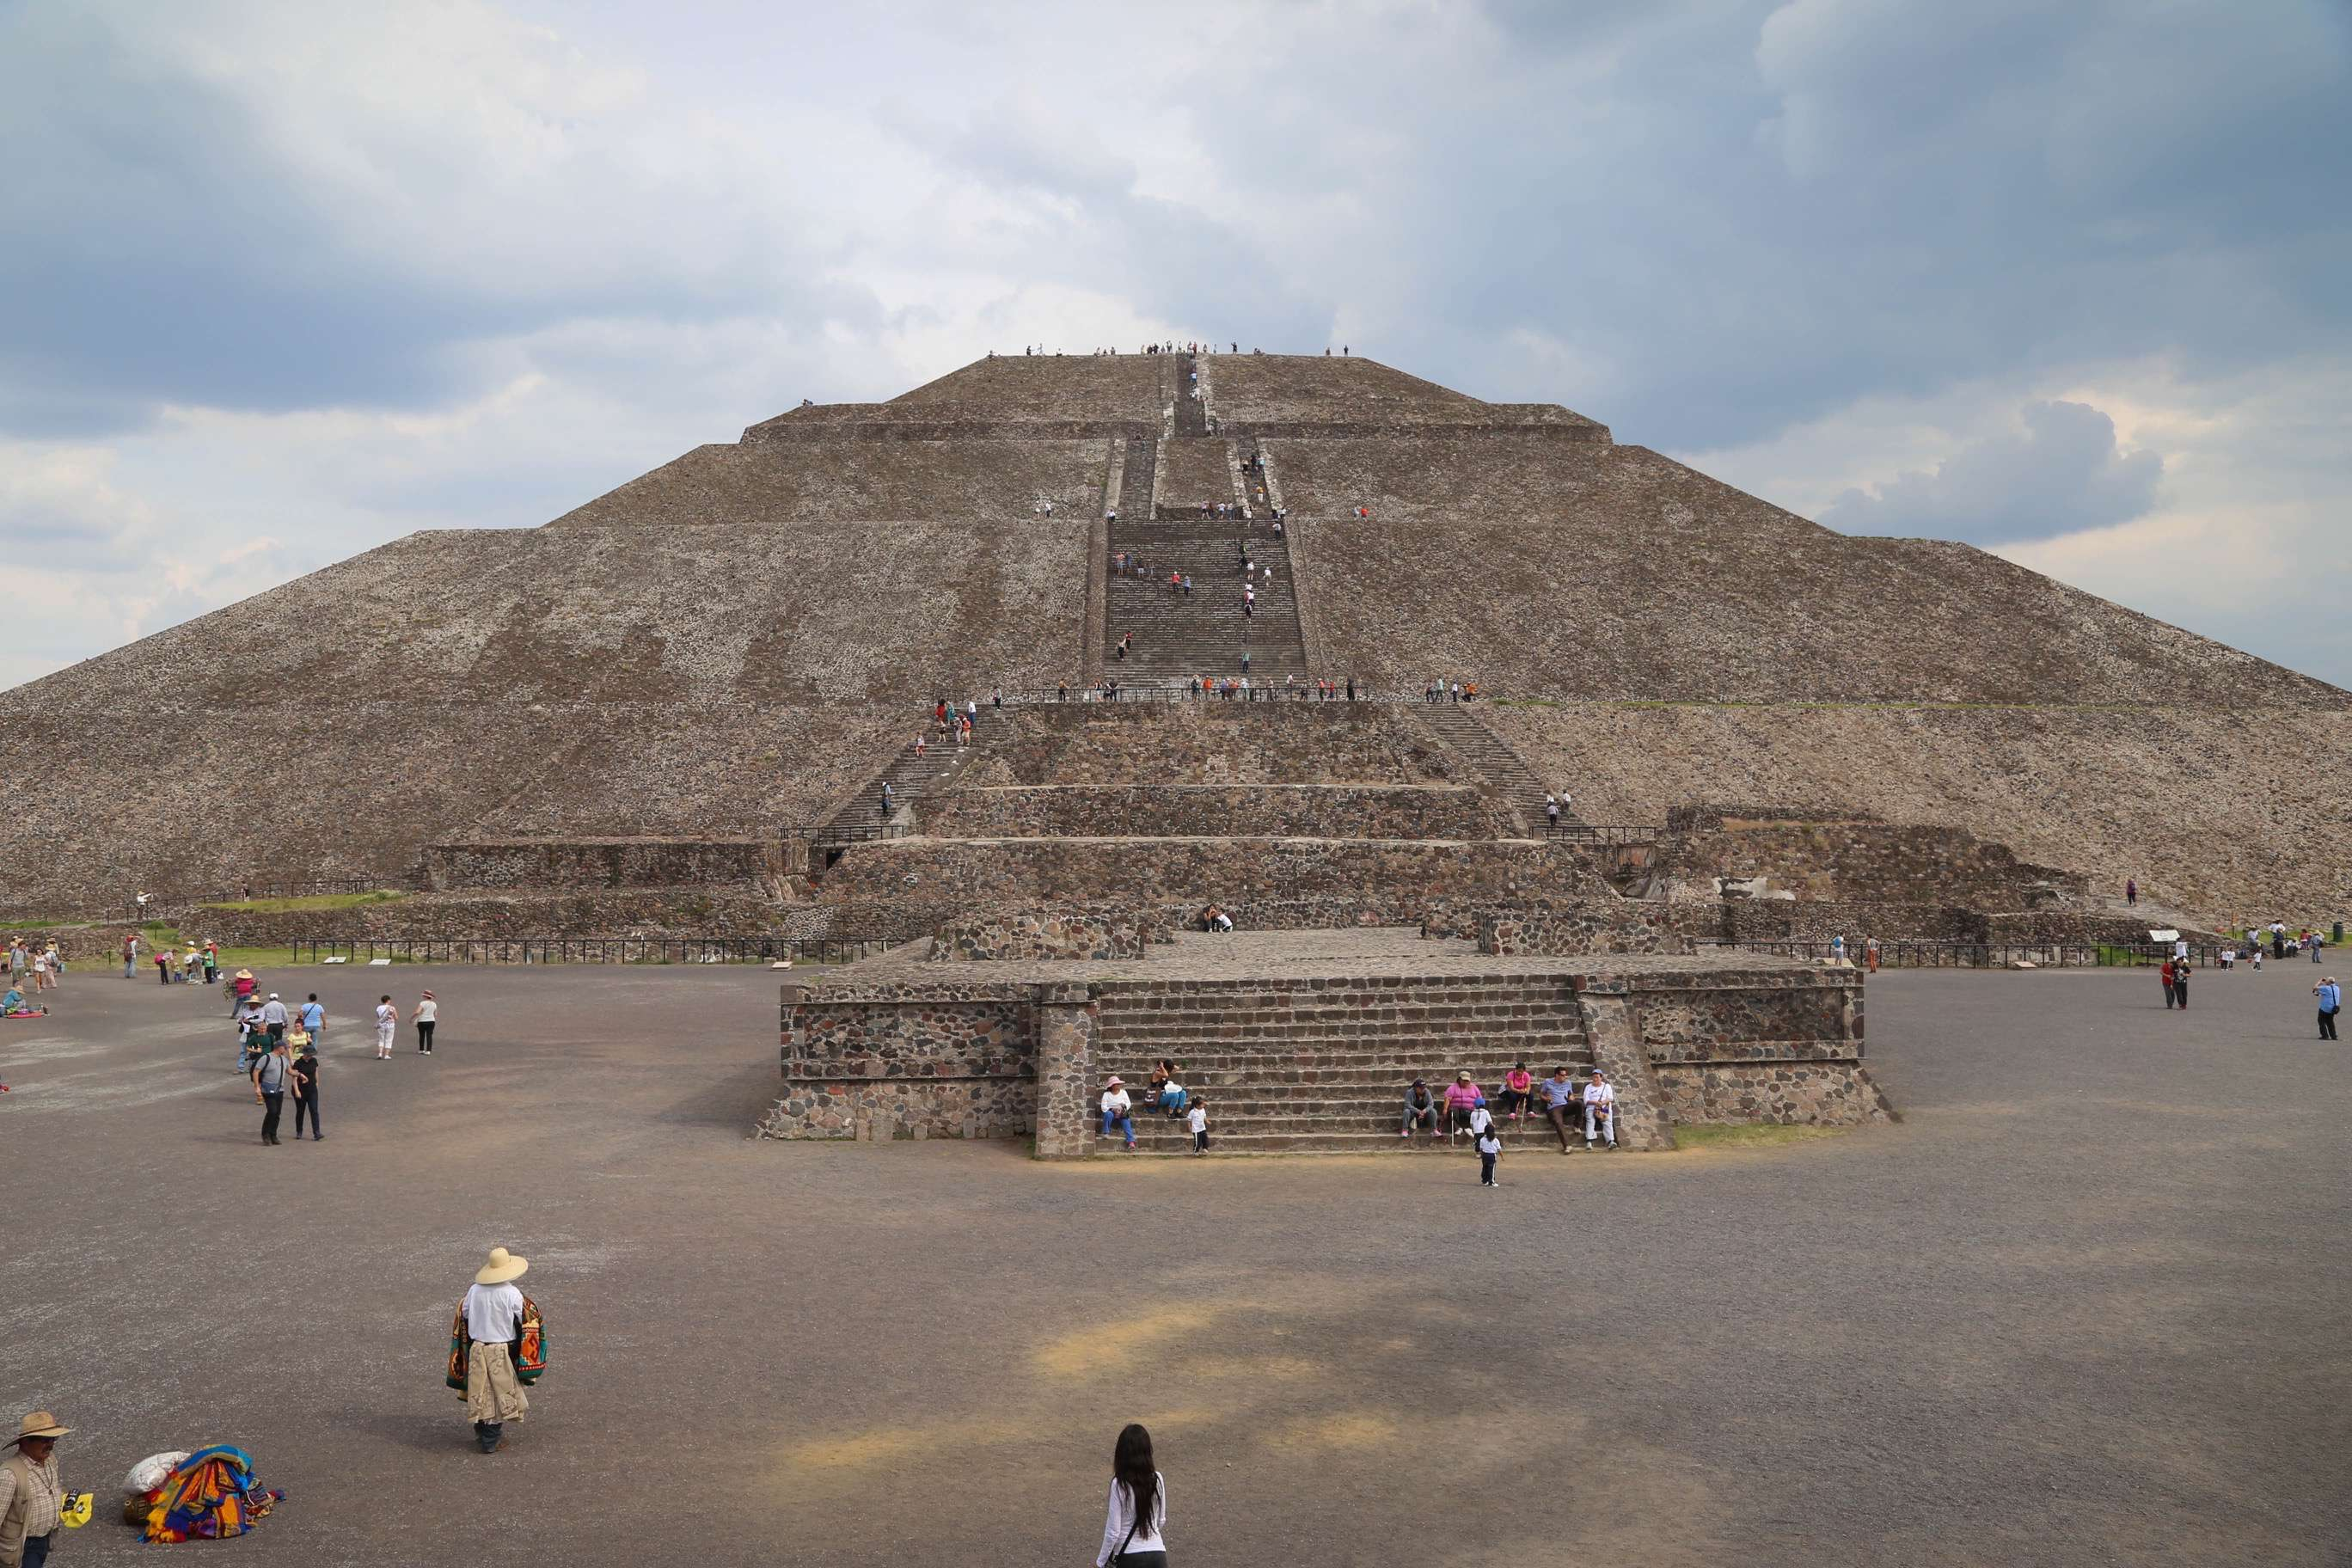 Teotihuacan's Pyramid of the Sun is massive and stands as the central element at the complex.